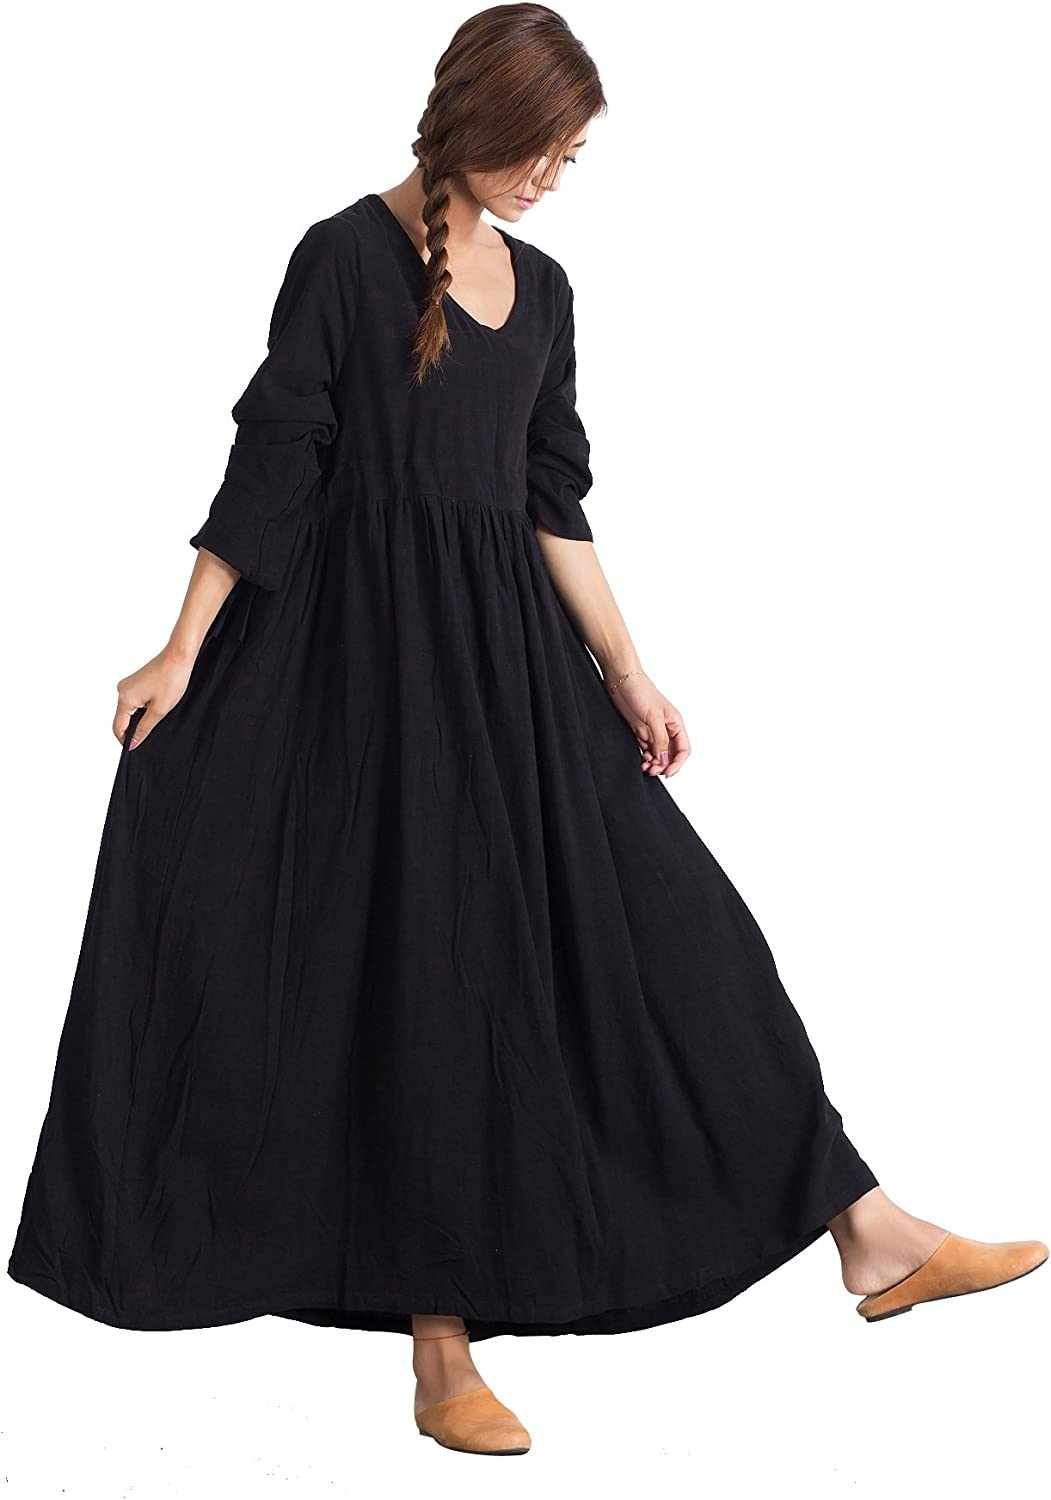 OverSize Women's Linen Cotton Loose Dress Casual Caftan Large Clothing a16